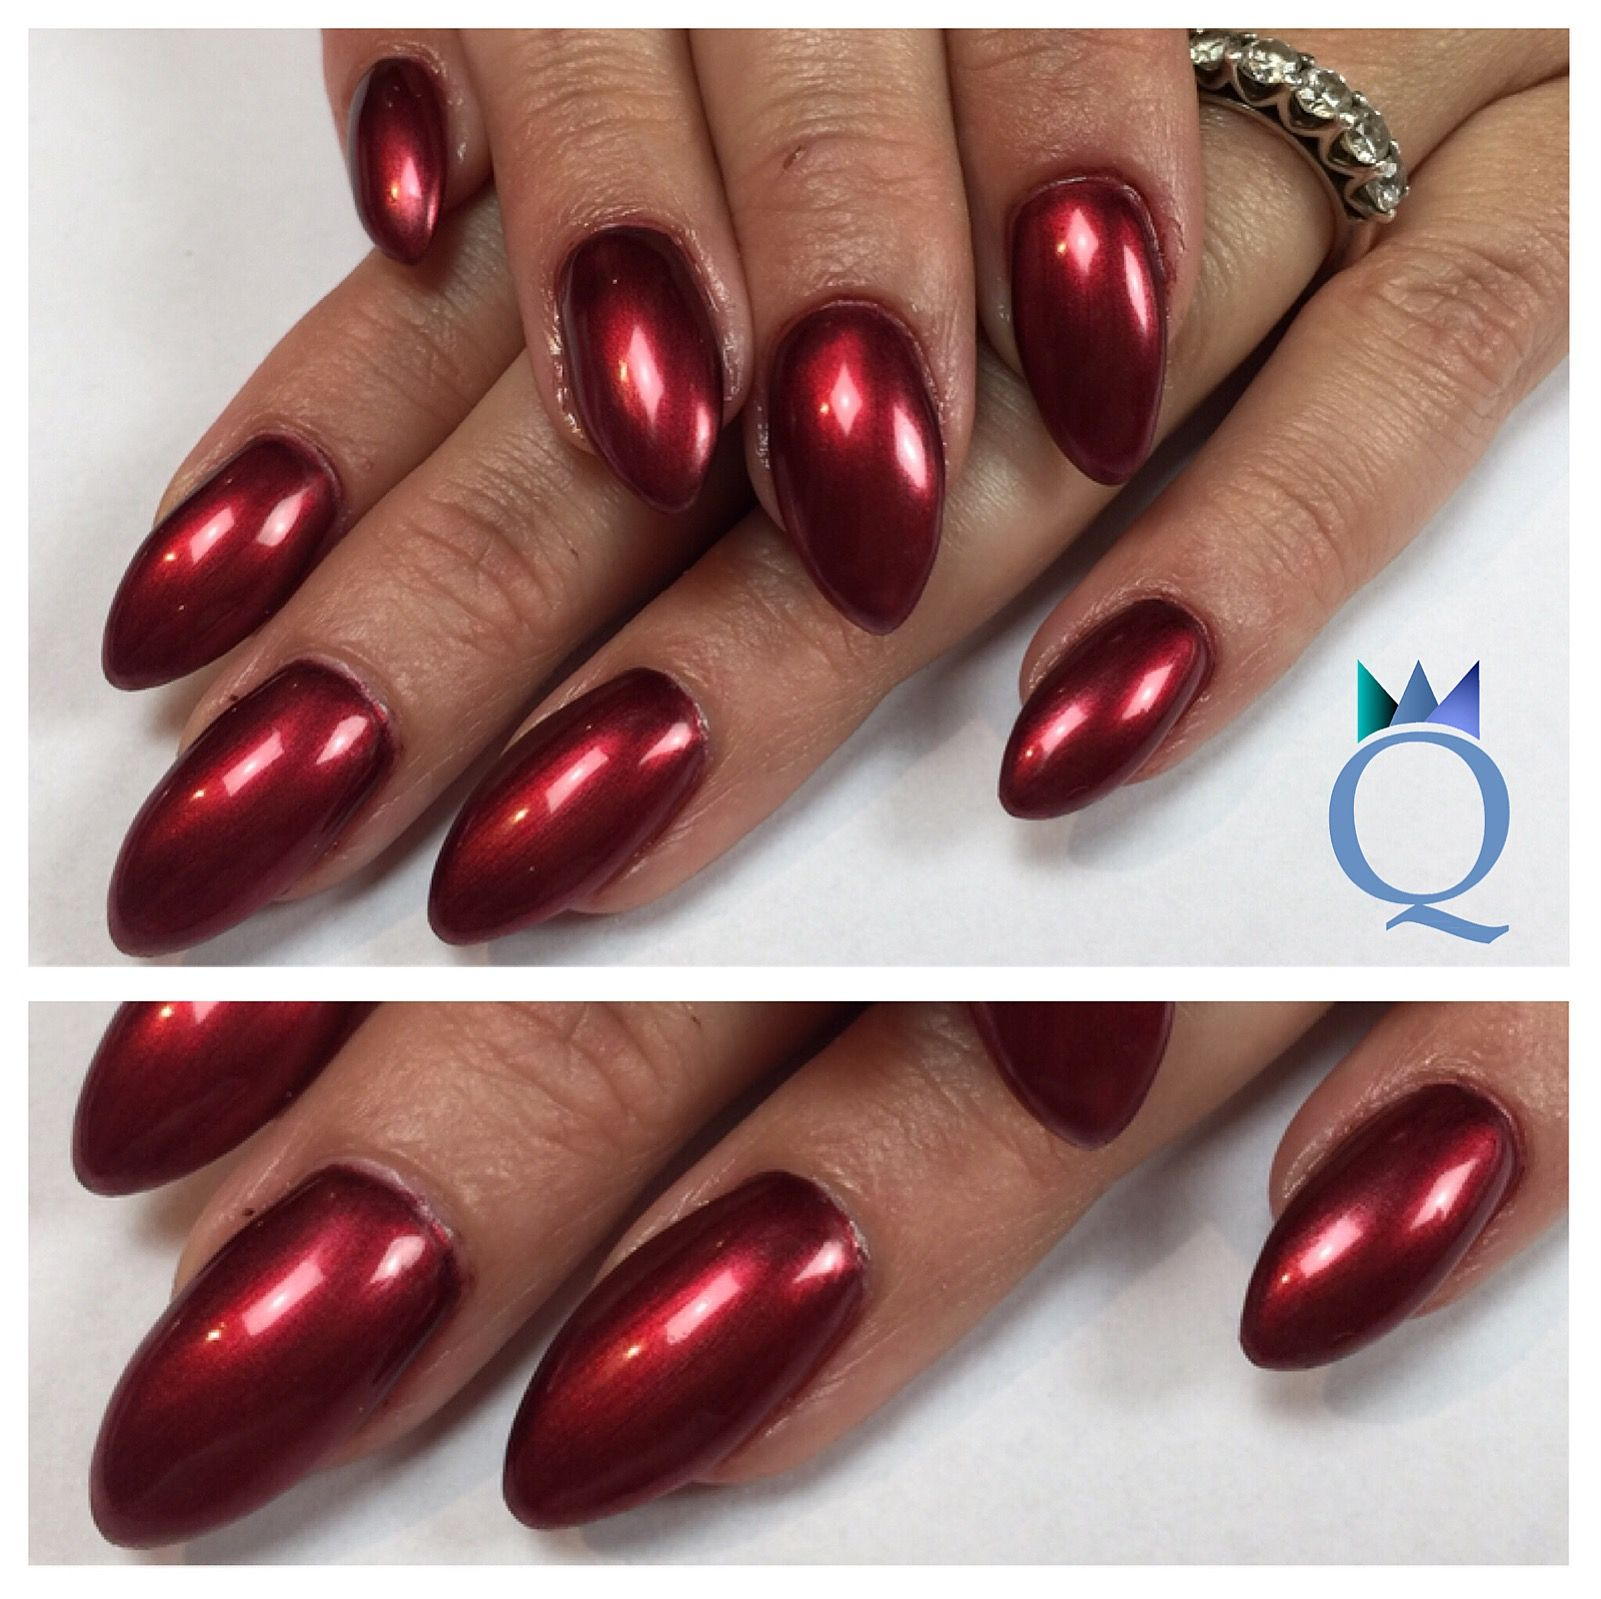 Großartig Nageldesign Rot Foto Von #almondnails #gelnails #nails #red #metallic #mandelform #gelnägel